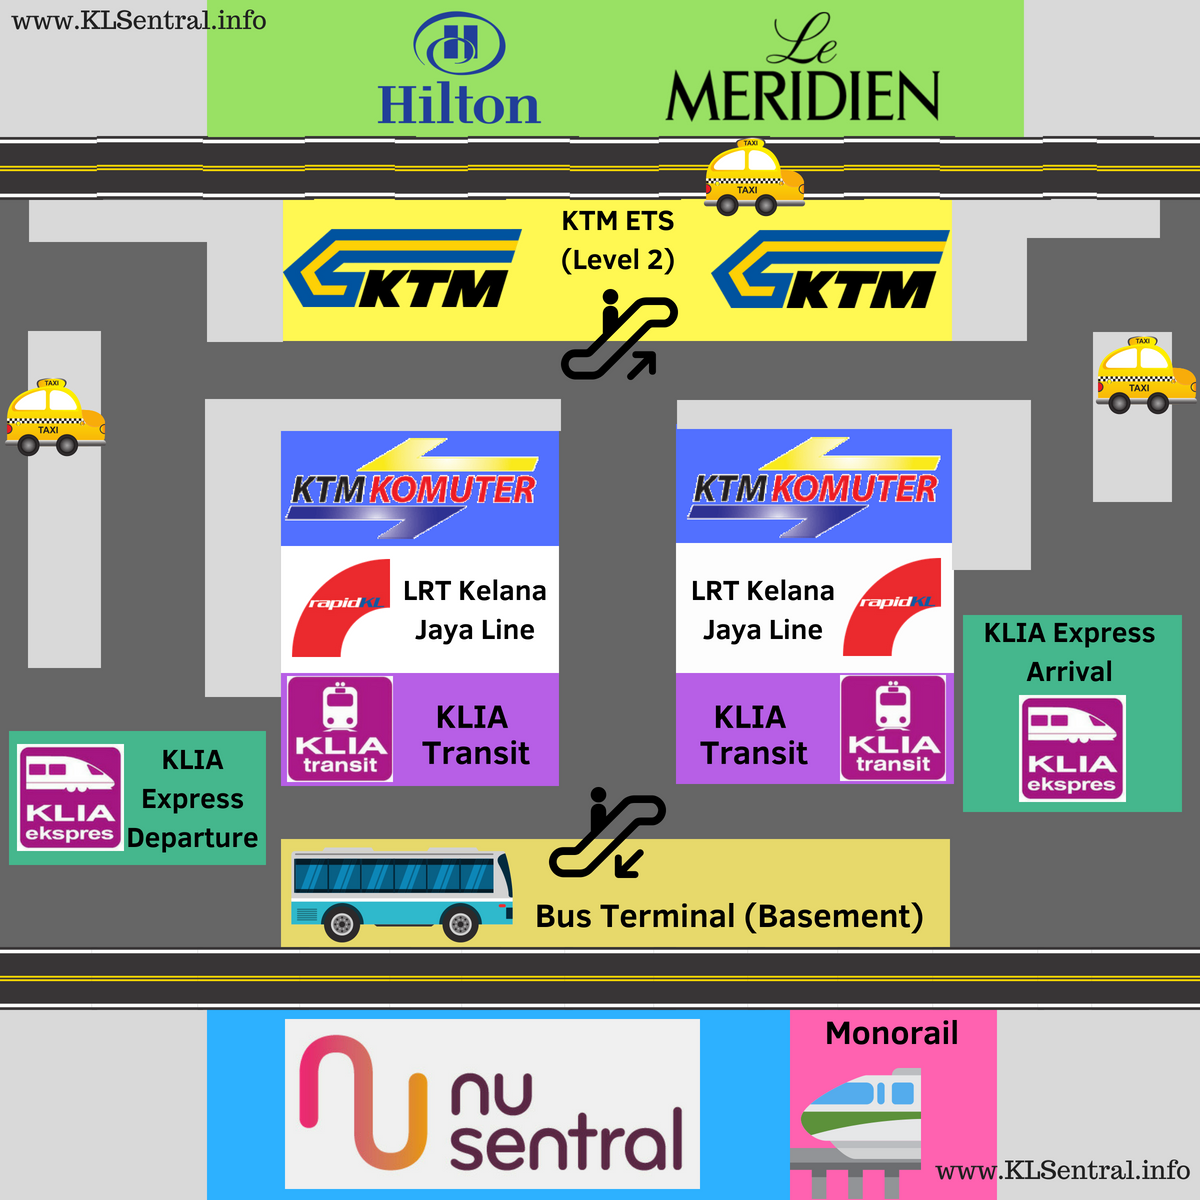 Kuala Lumpur Subway Map.Kl Sentral Station Maps Transit Route Station Map Floor Directory